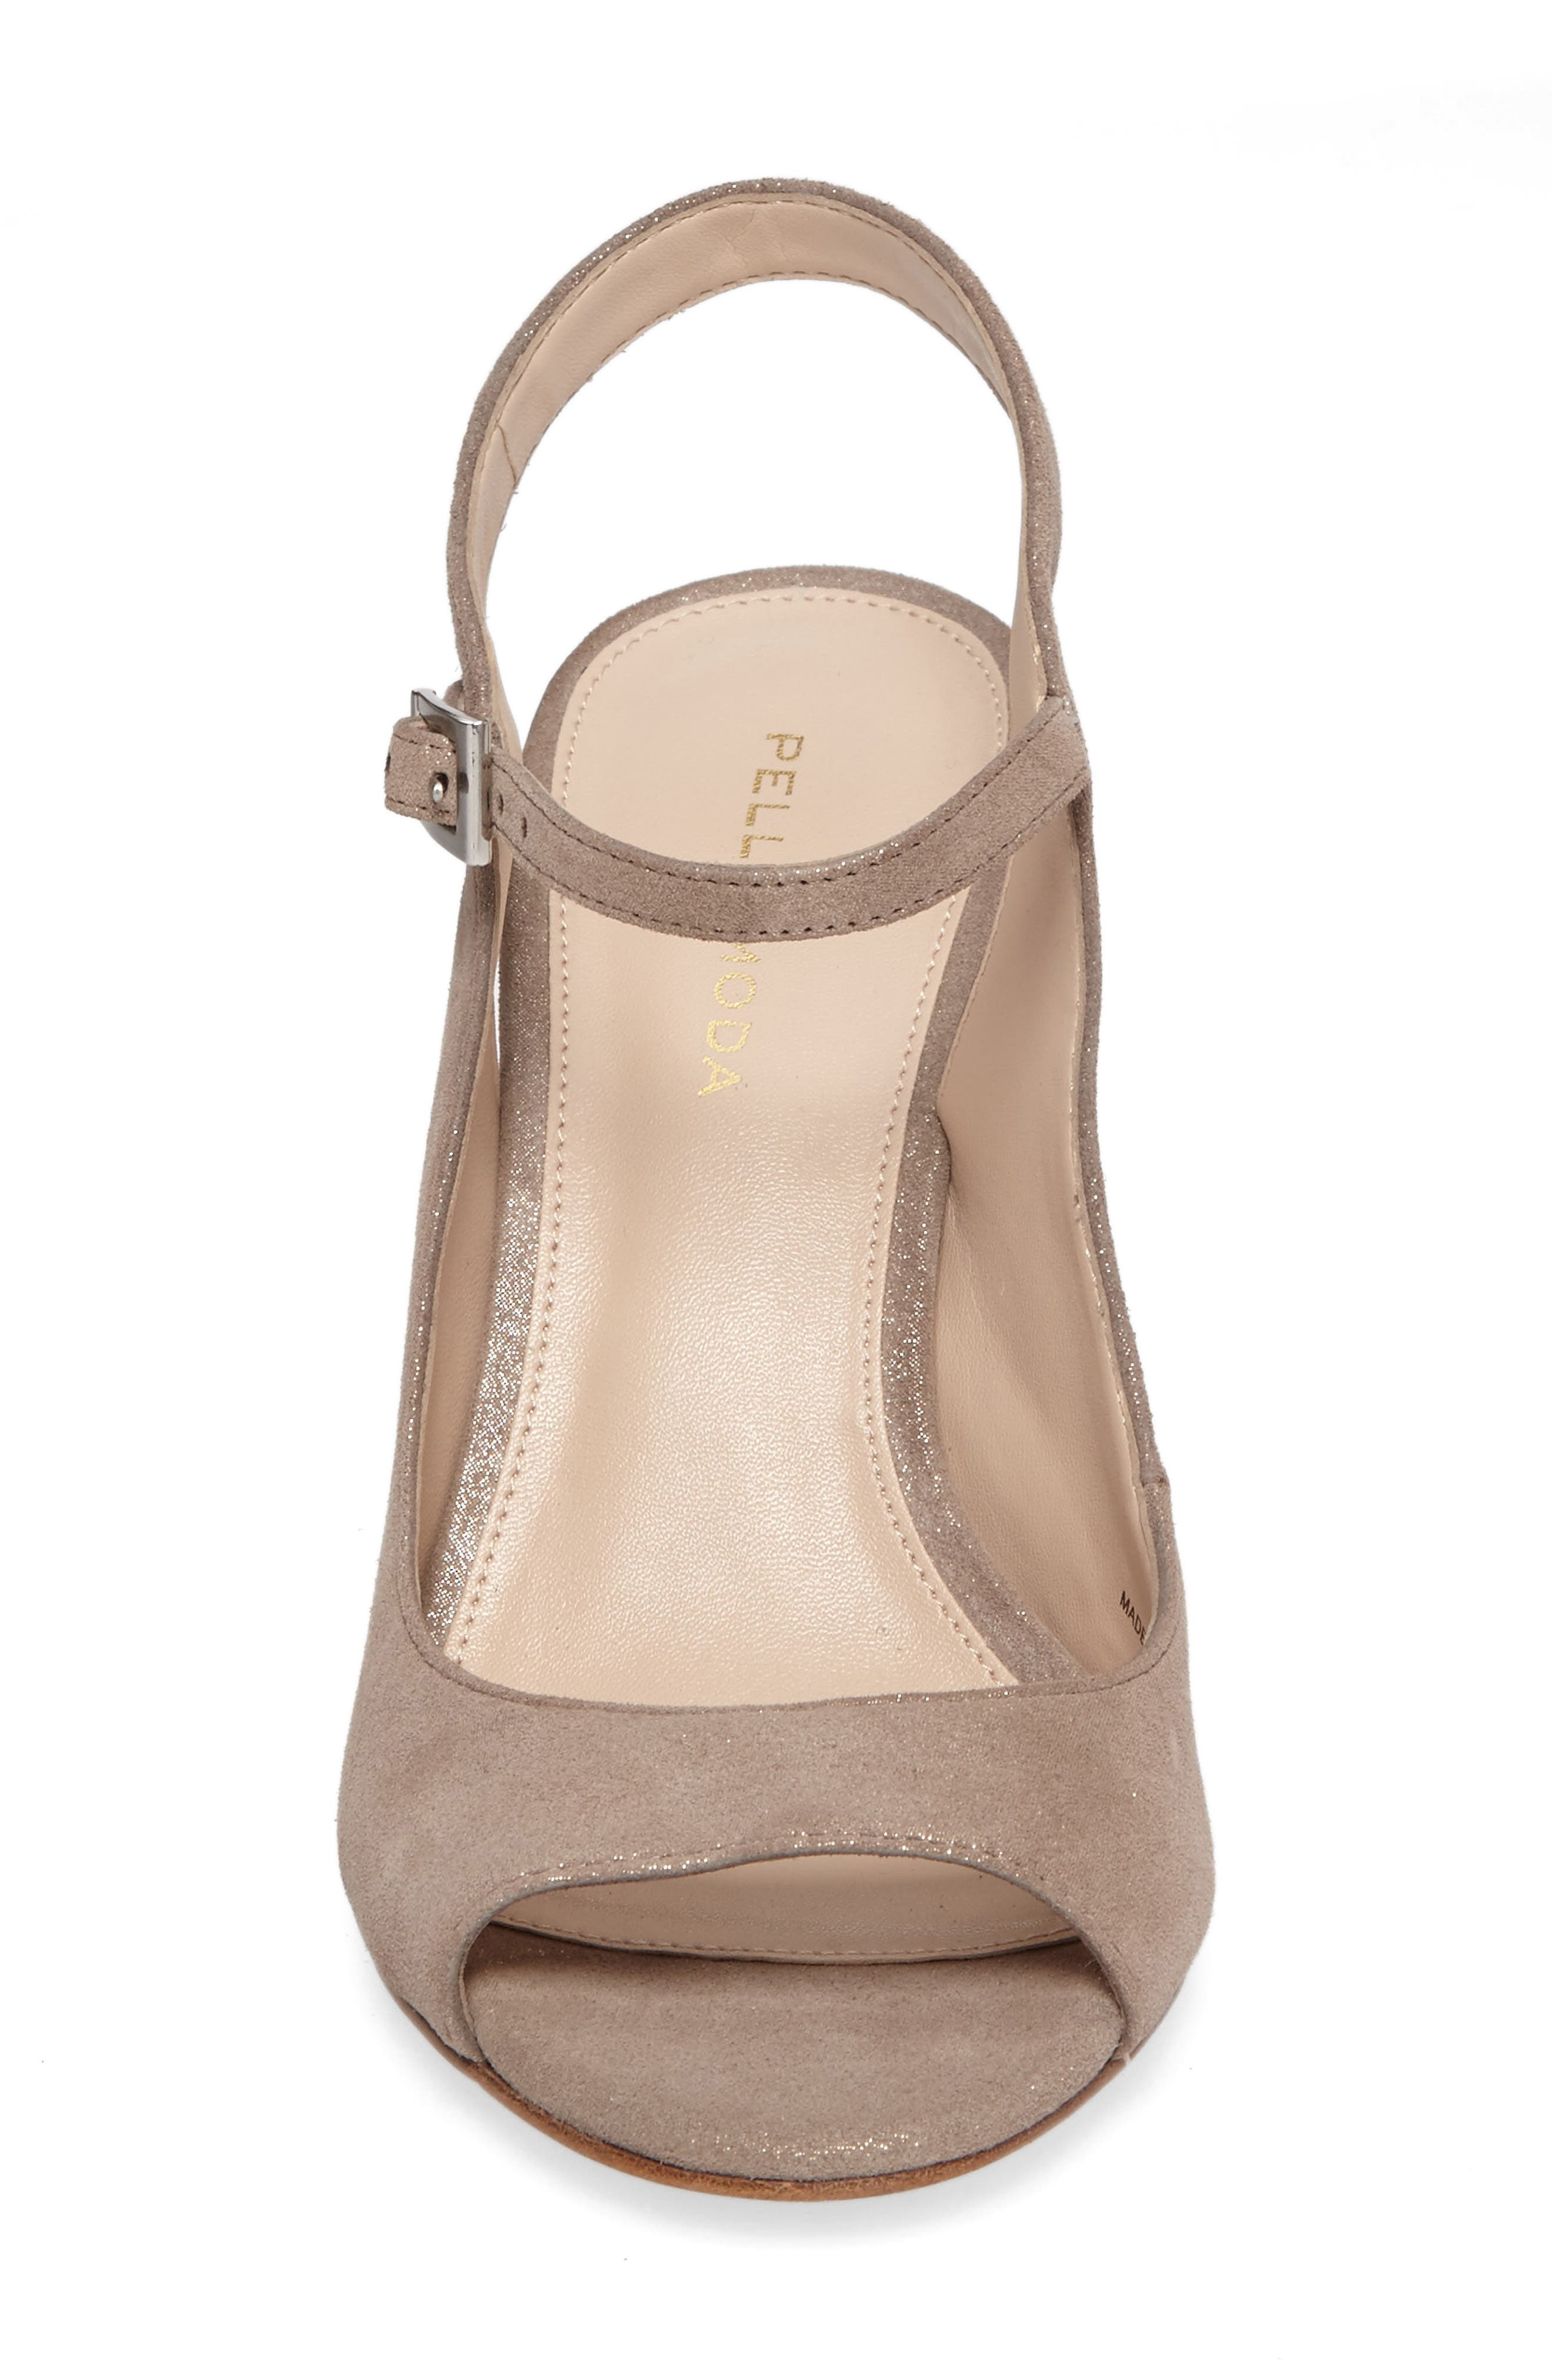 Kinsey Sandal,                             Alternate thumbnail 4, color,                             Taupe Leather